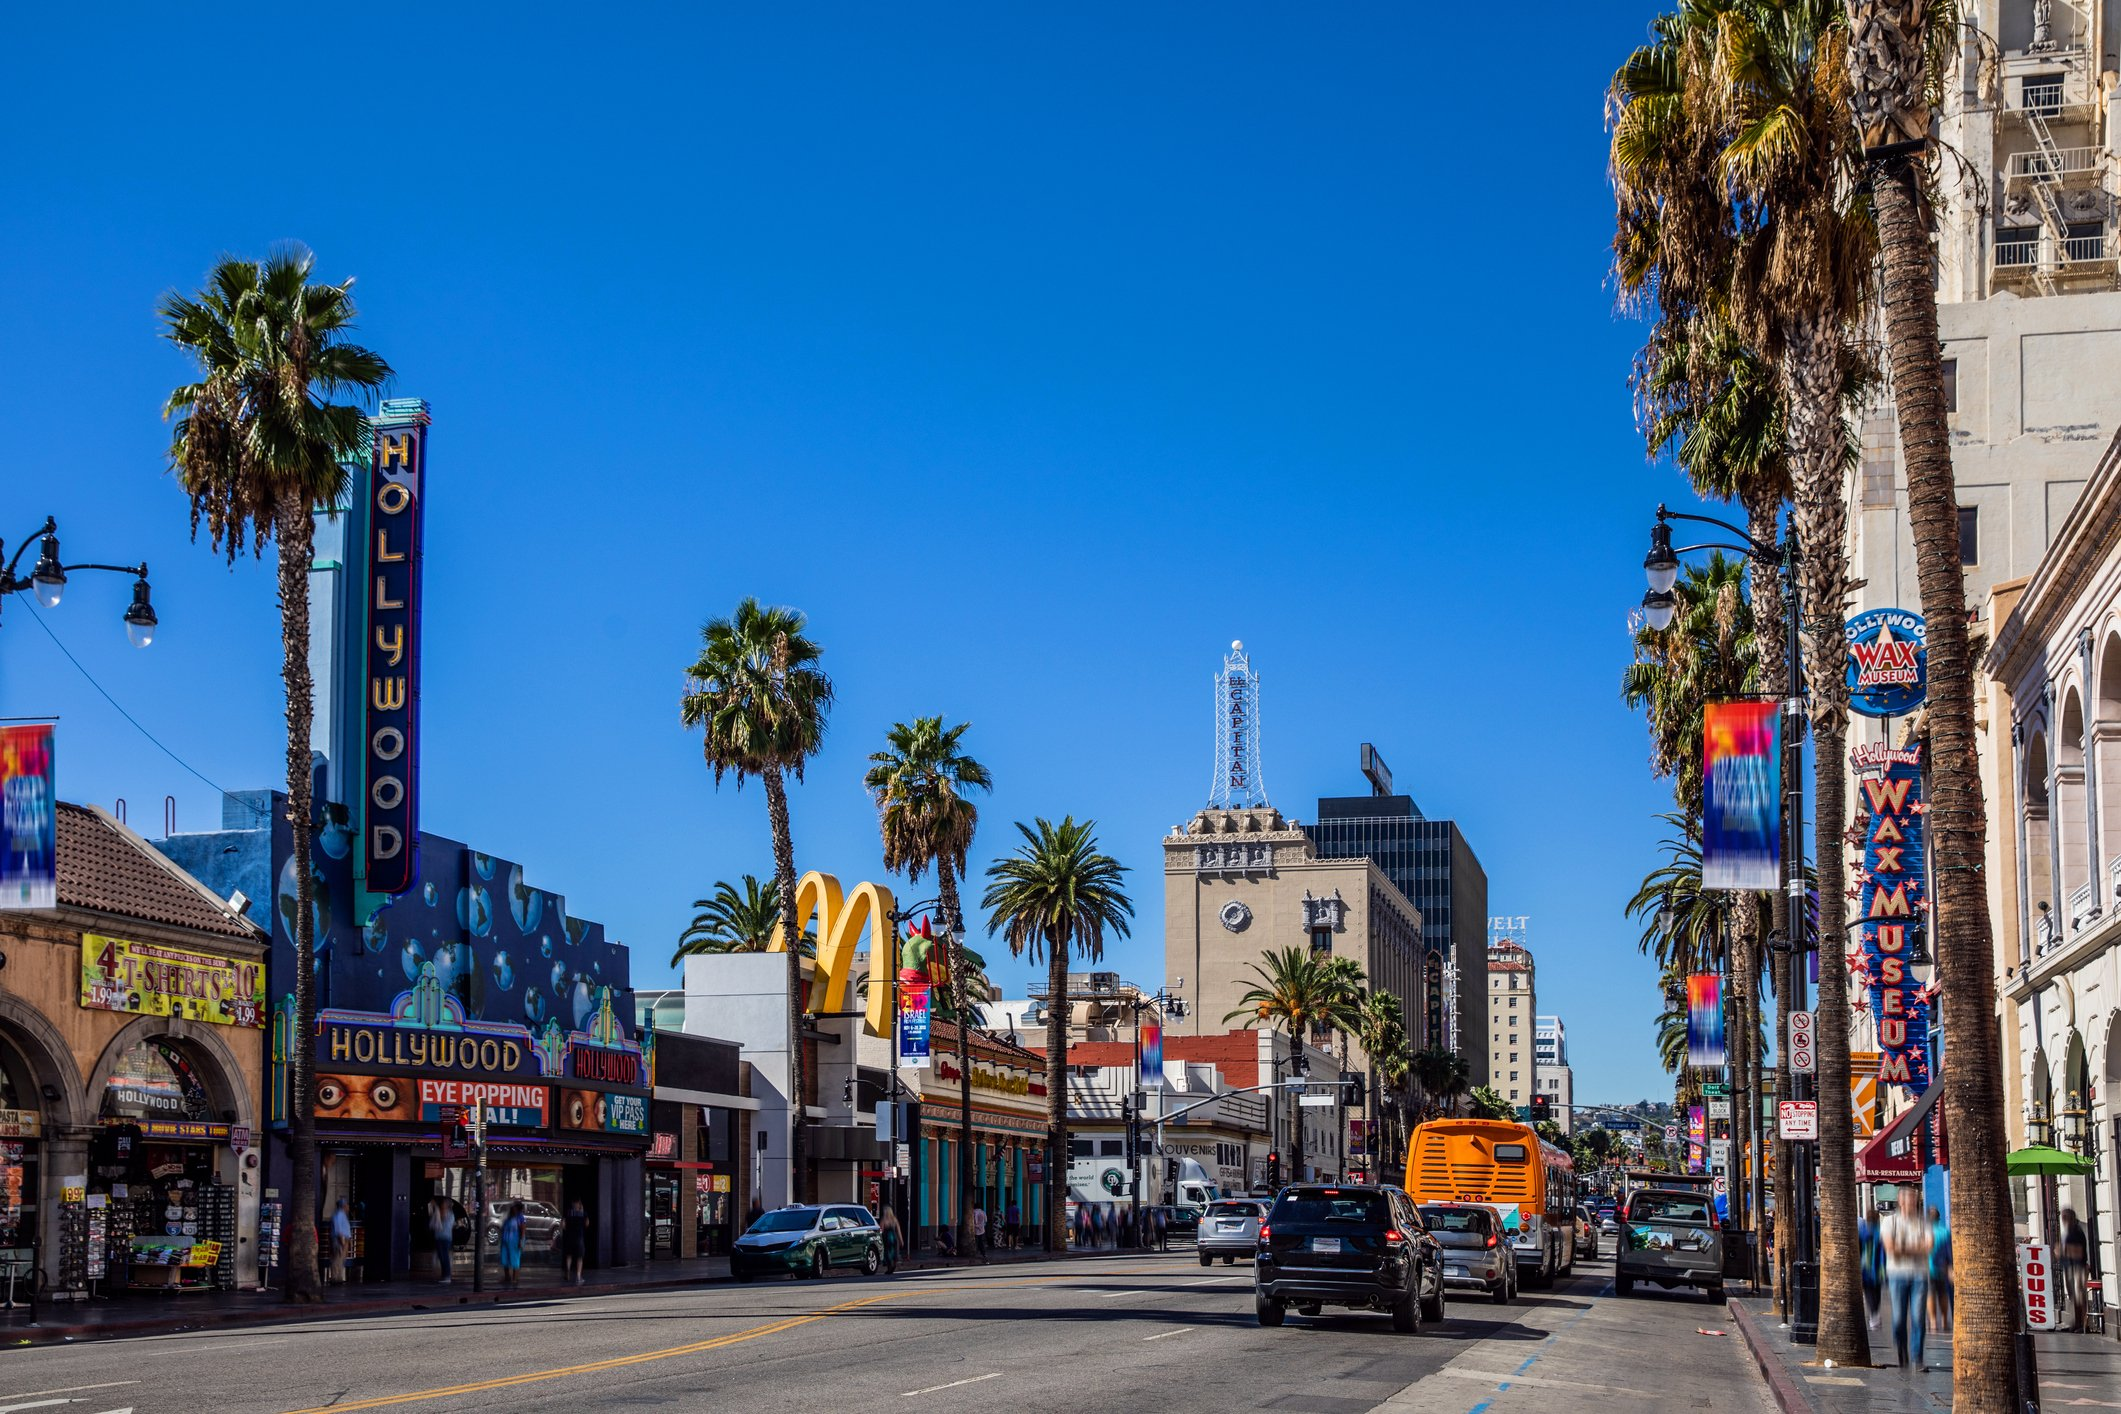 A view down Hollywood Boulevard on a sunny day.